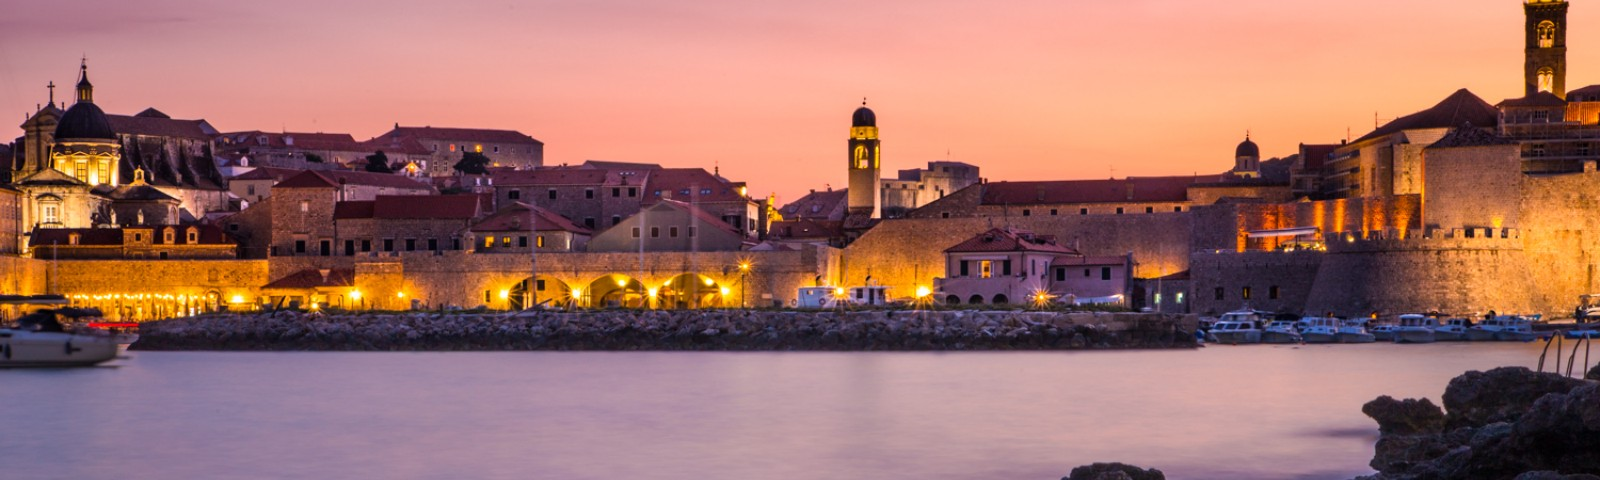 Sunset across the old town and city walls of Dubrovnik, Croatia